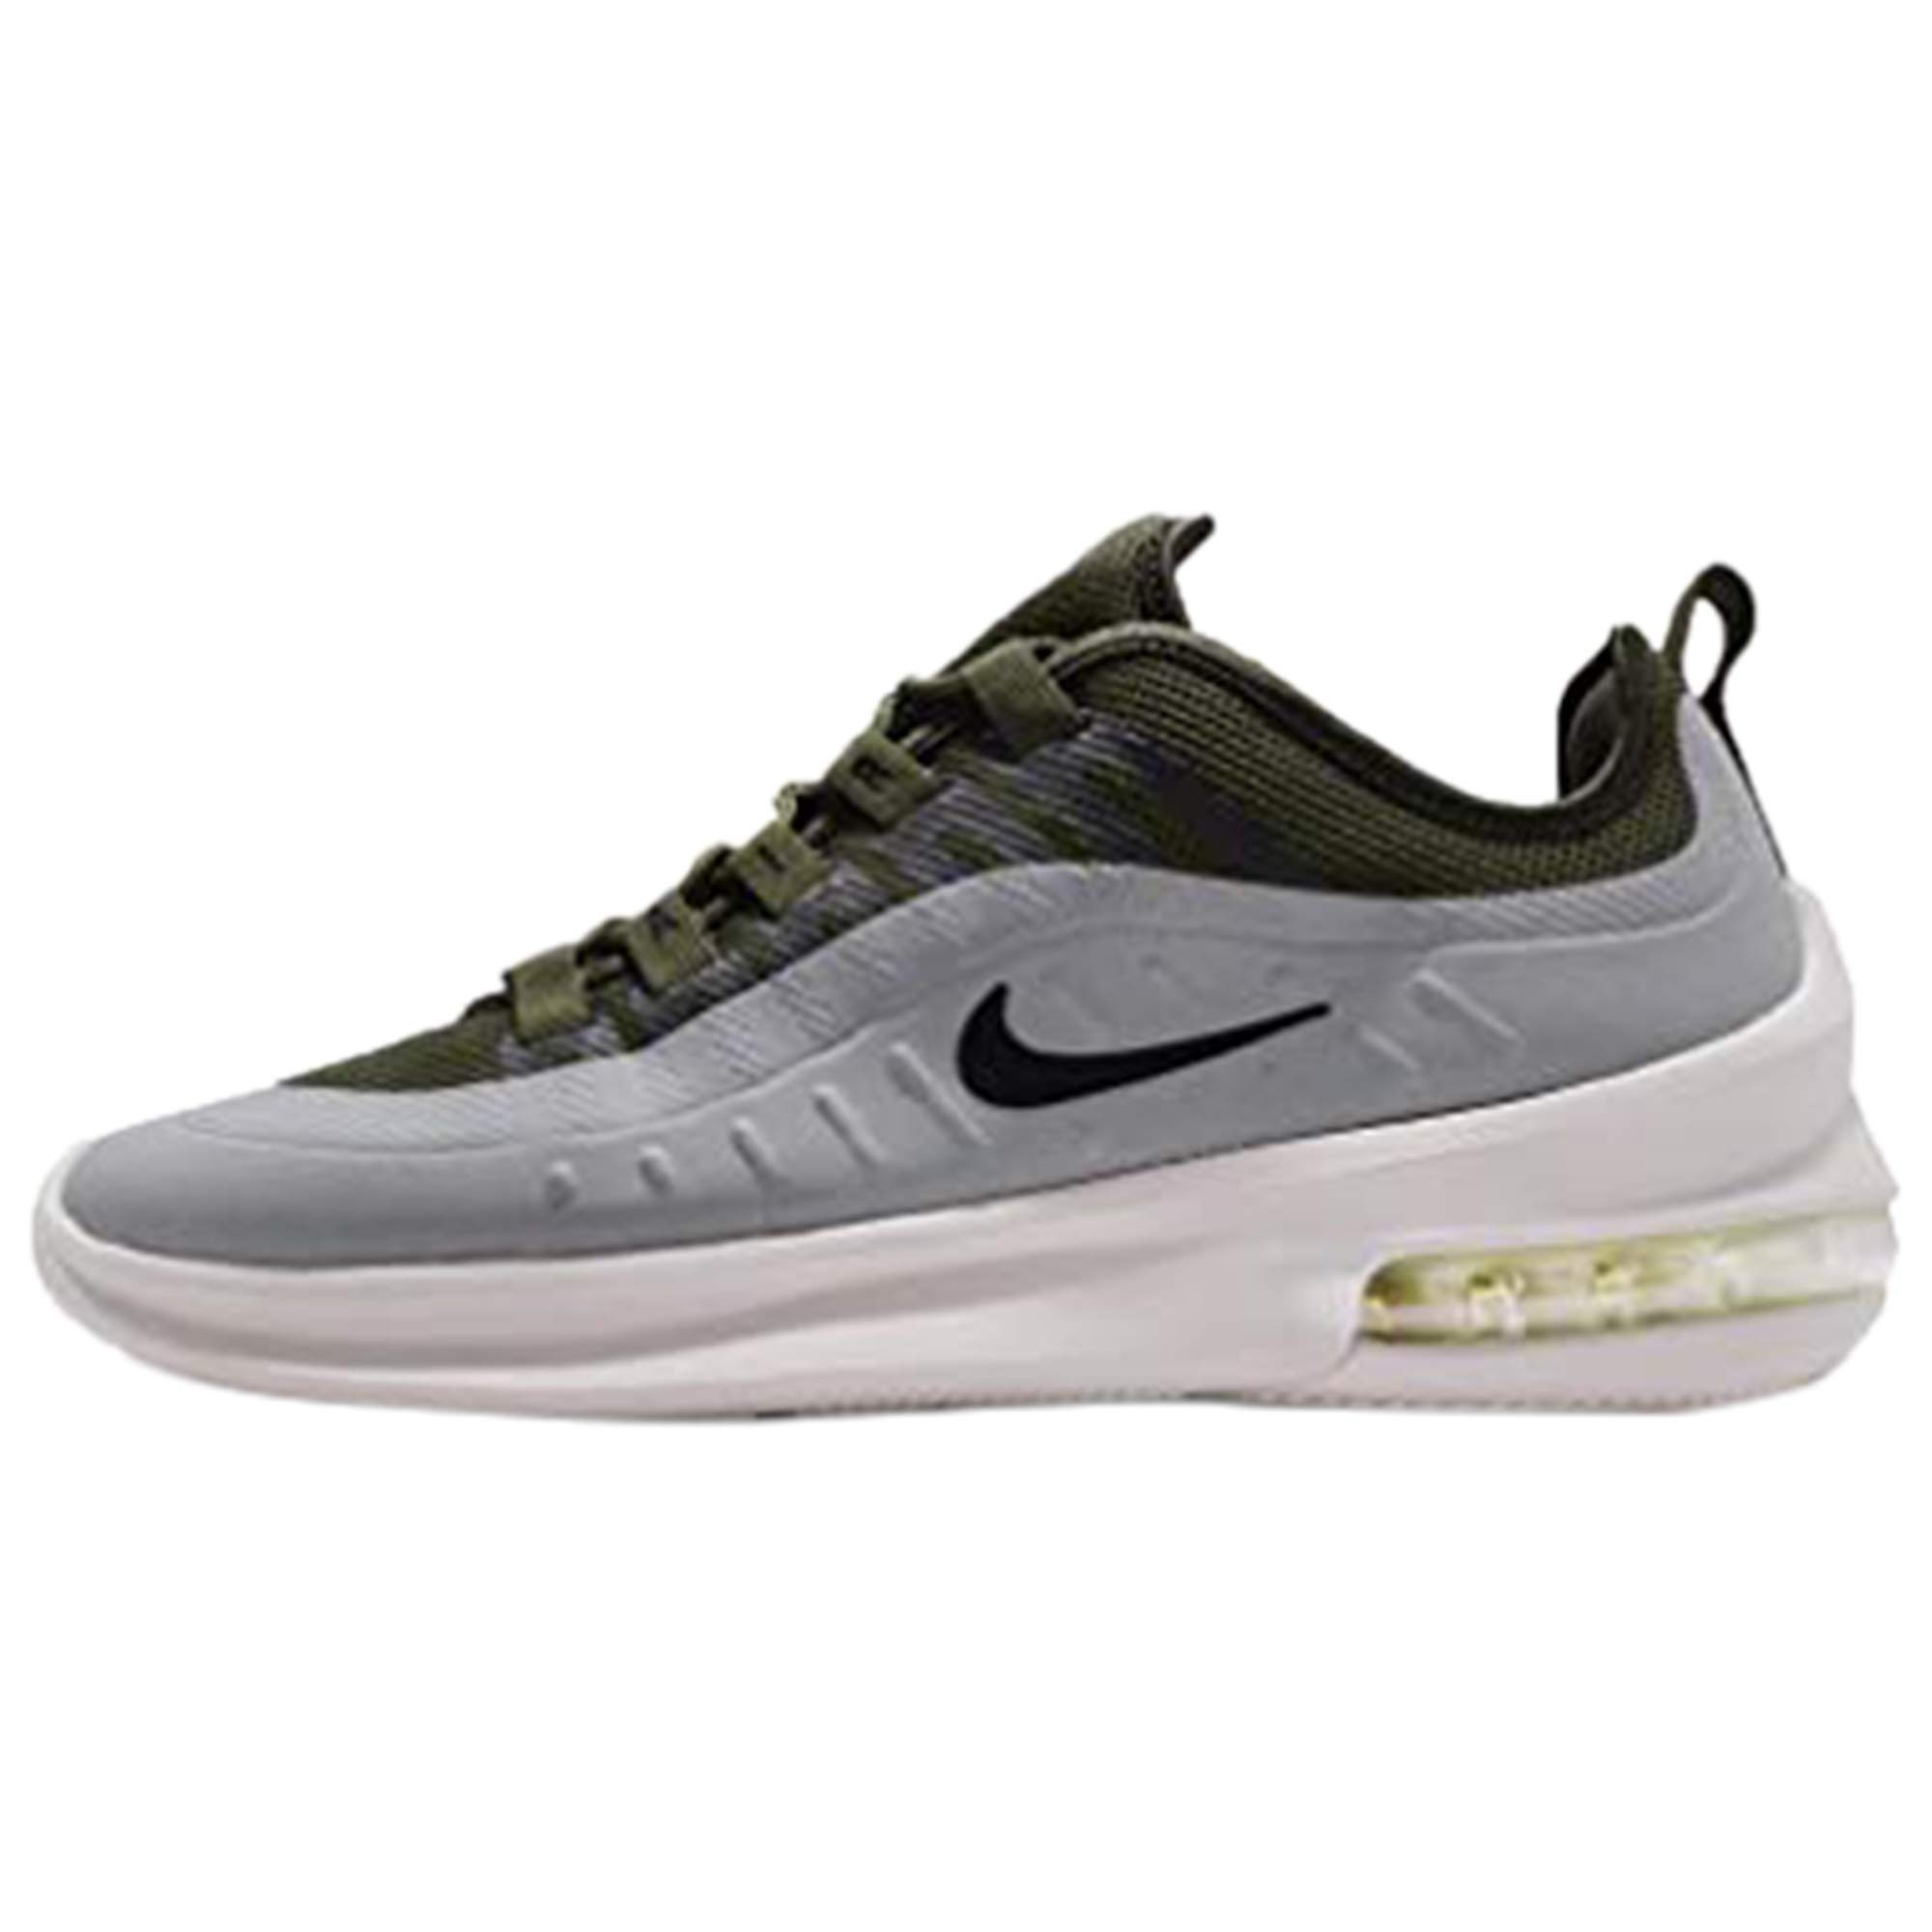 b0bcfc2de77518 Galleon - NIKE Men s Air Max Axis Running Shoe